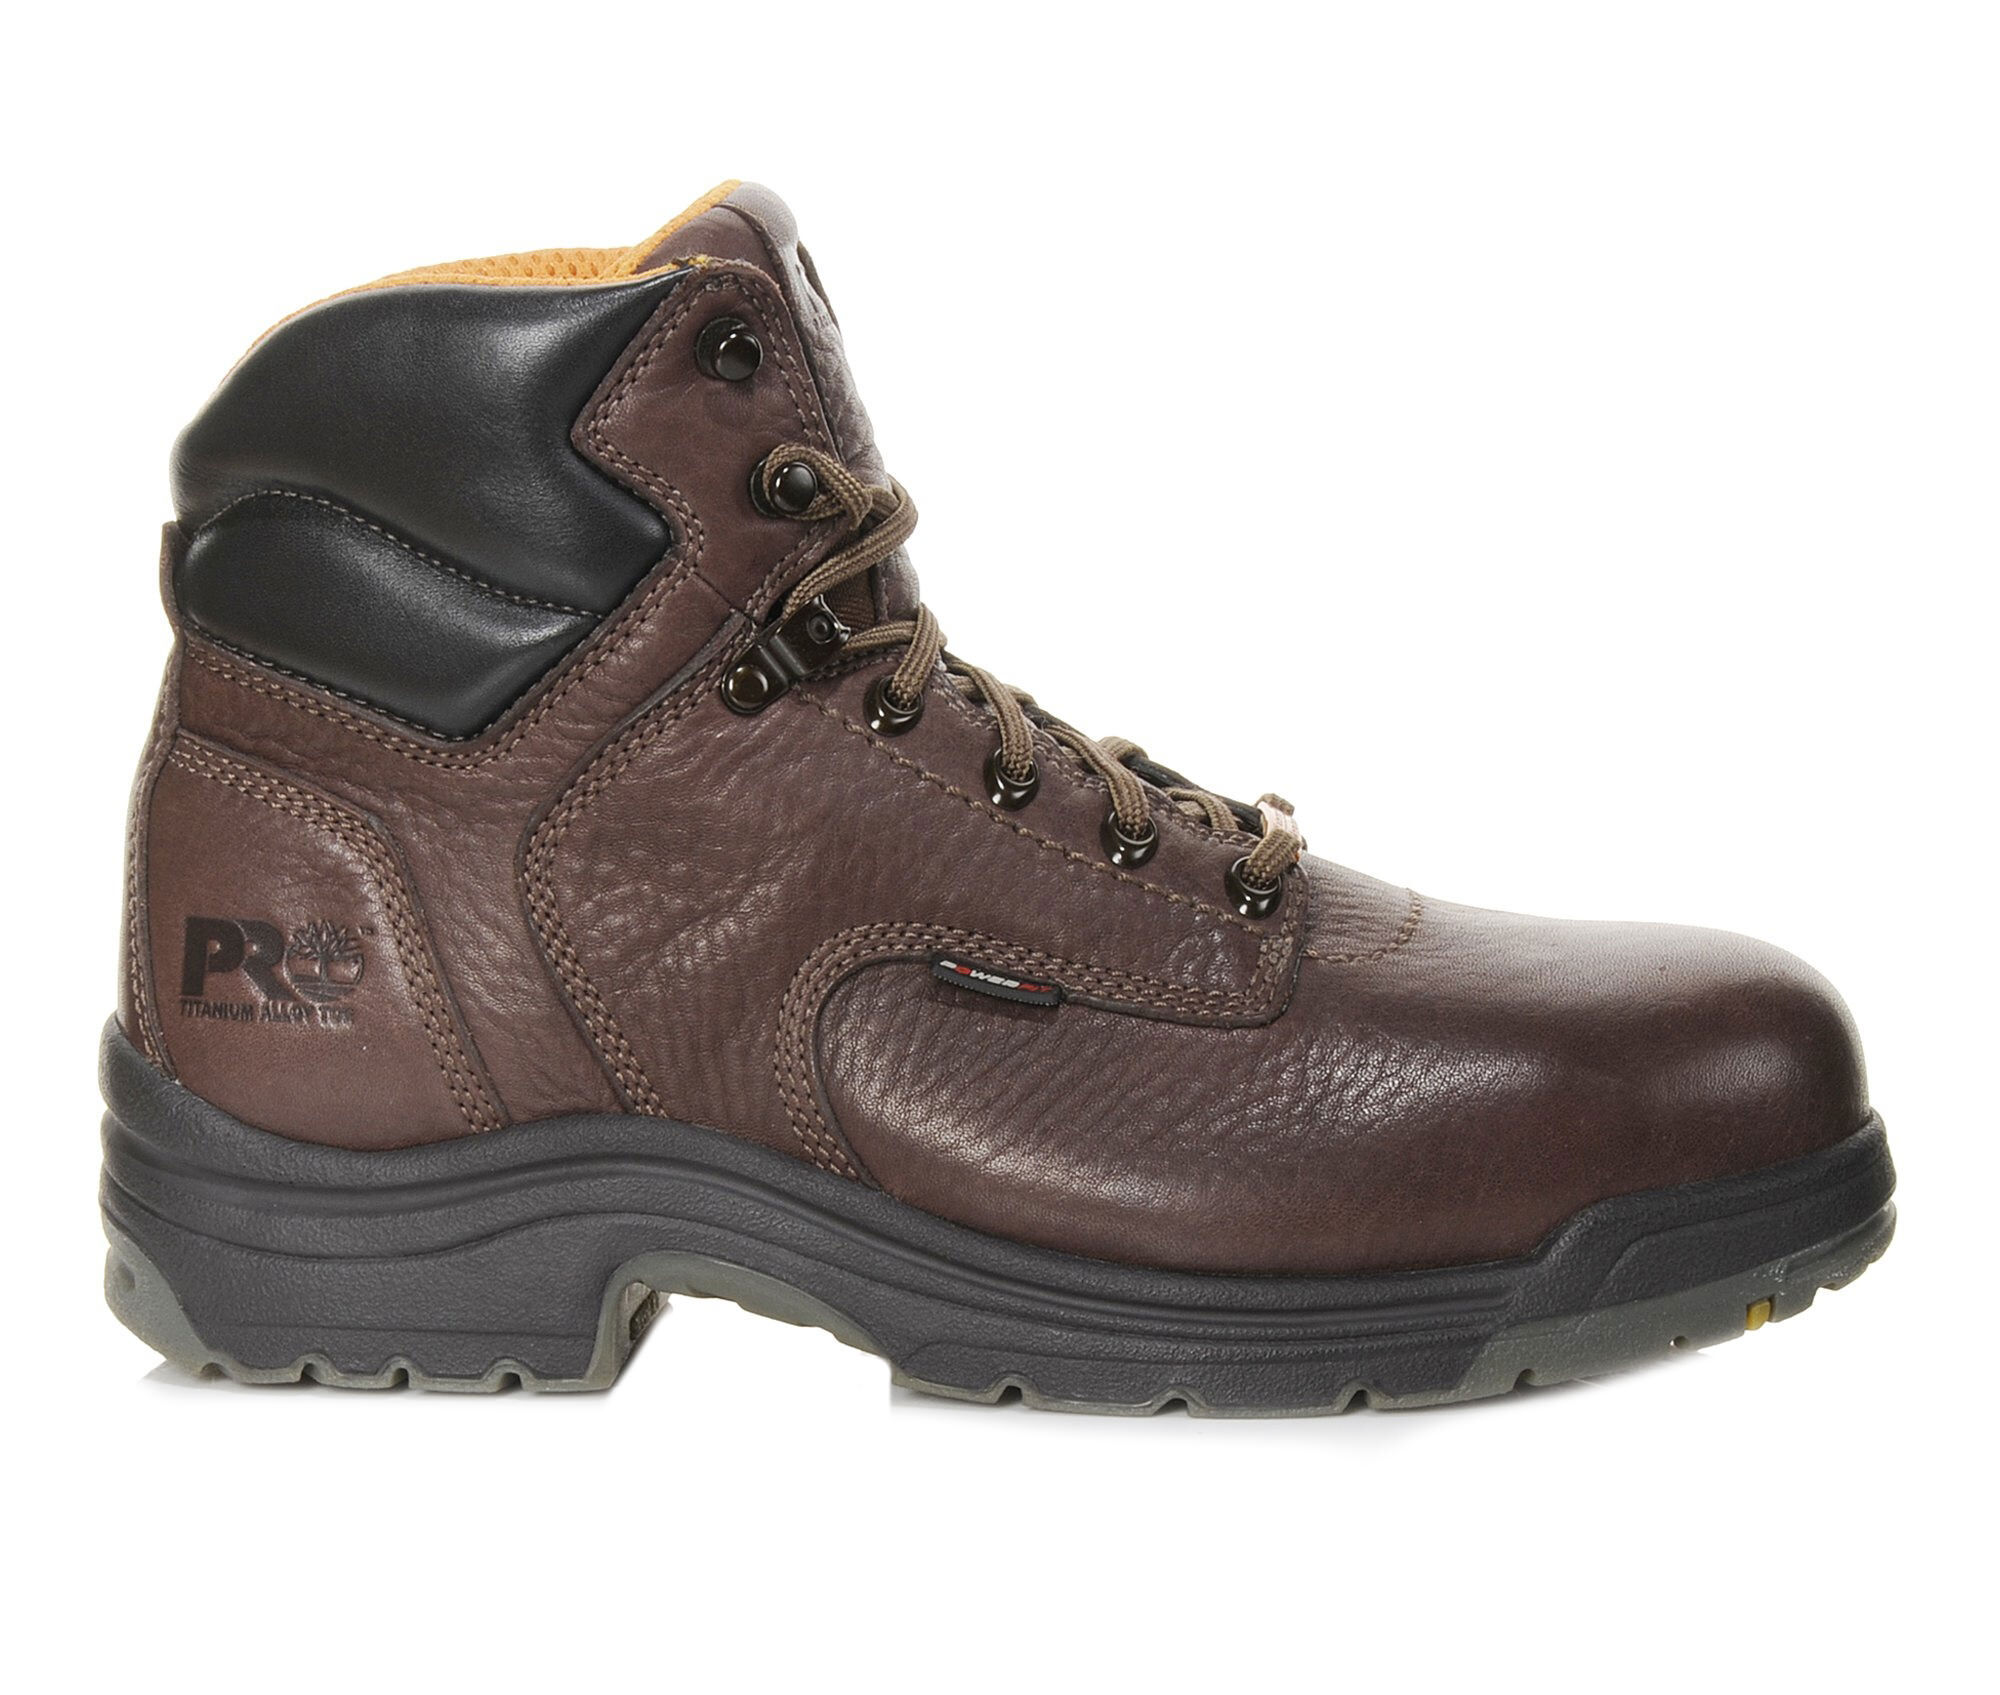 Men's Timberland Pro Titan 6 Inch Safety Toe 26063 Work Boots